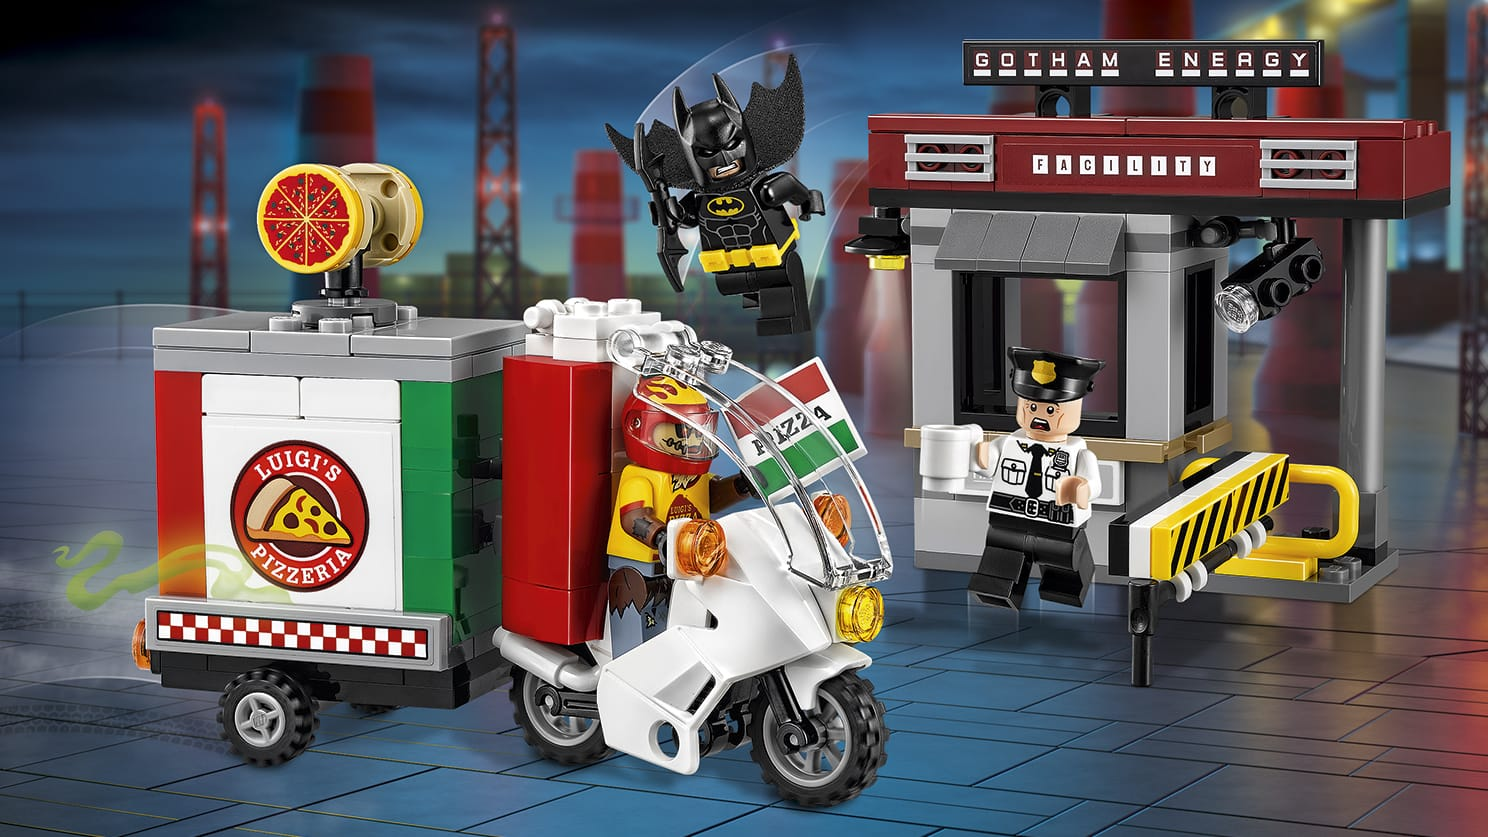 LEGO Batman Movie Scarecrow Special Delivery - 70910 - Scarecrow disguises as a pizza delivery and tries to sabotage Gotham Energy Facility with fear gas but Batman come to the rescue.